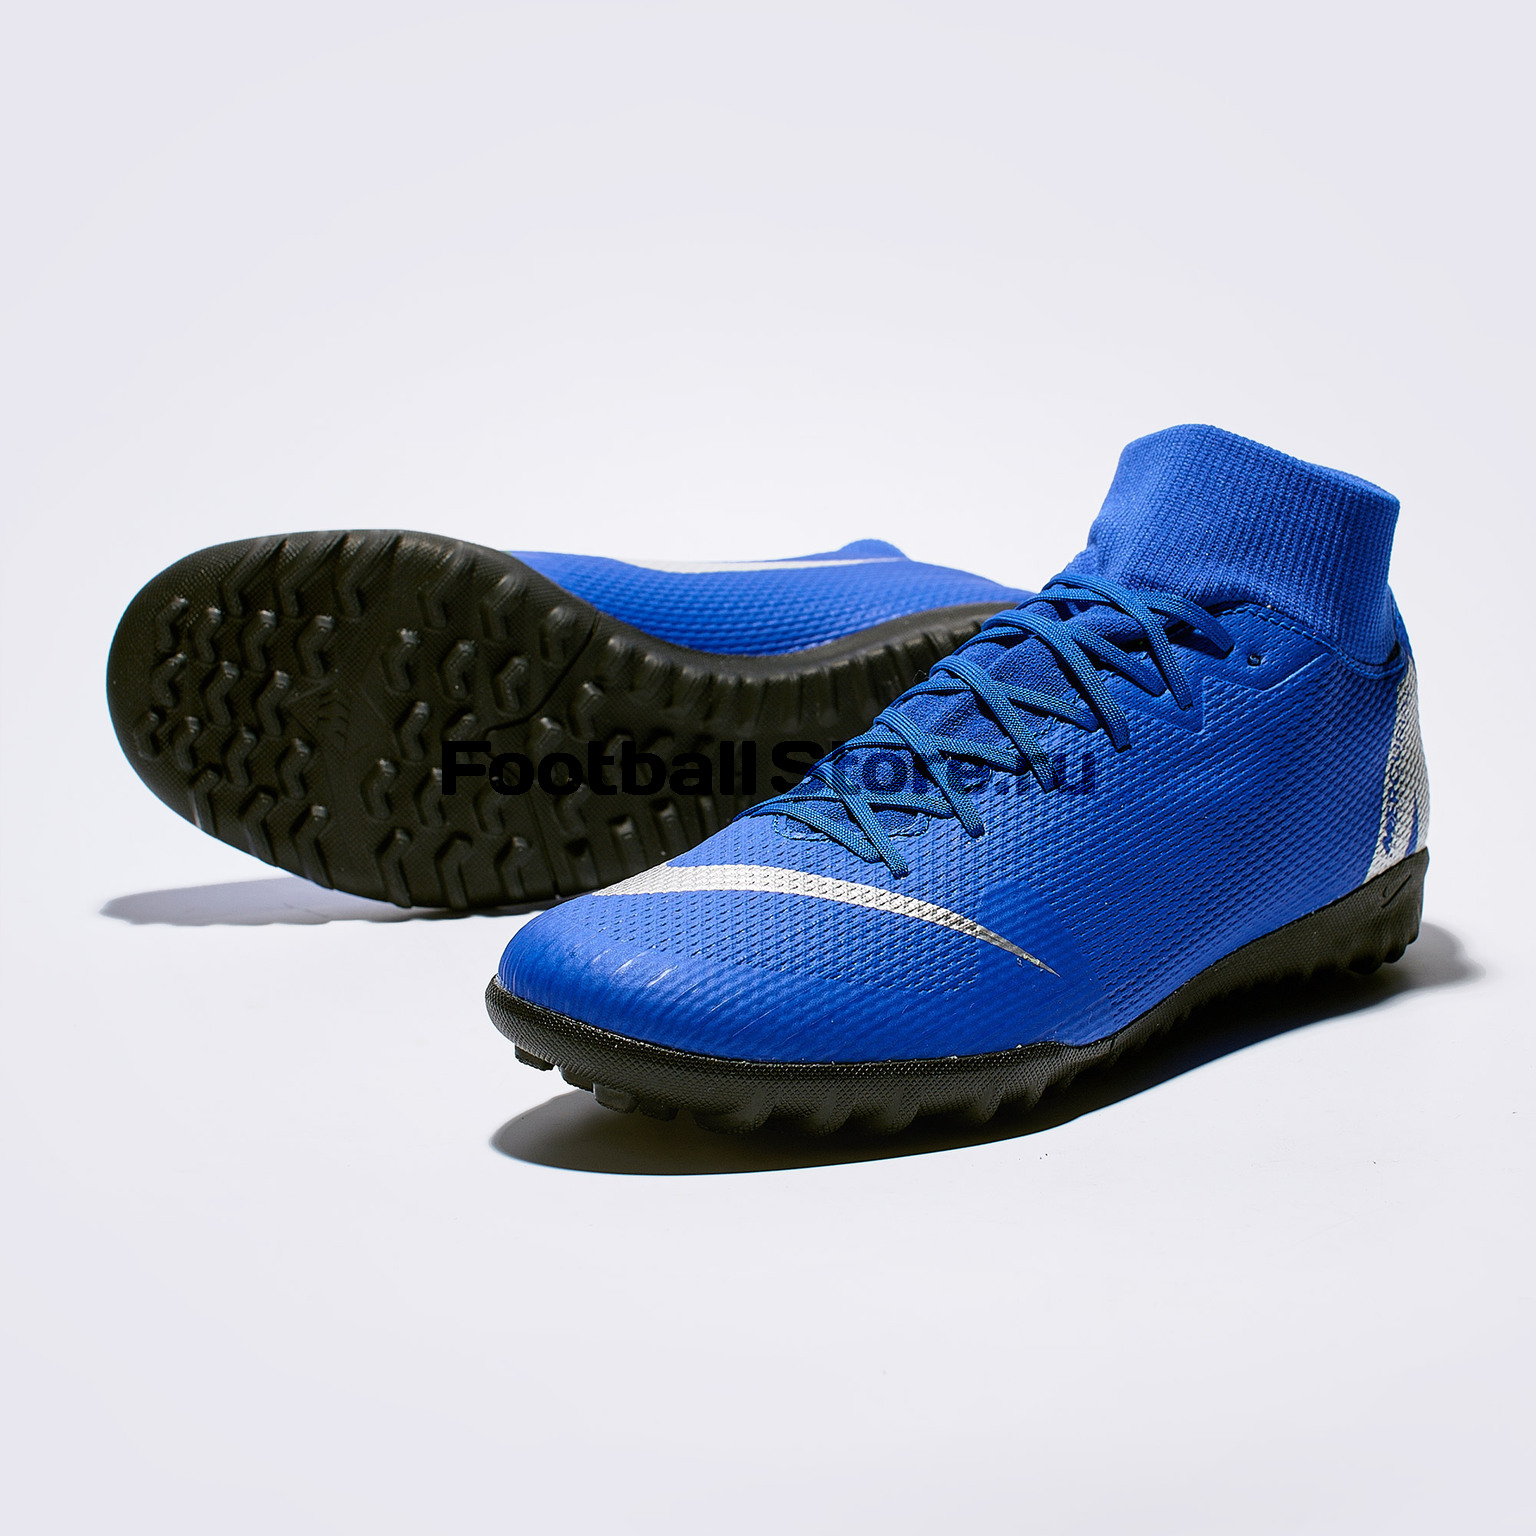 Шиповки Nike SuperFly X 6 Academy TF AH7370-400 бутсы nike шиповки nike jr tiempox legend vi tf 819191 018